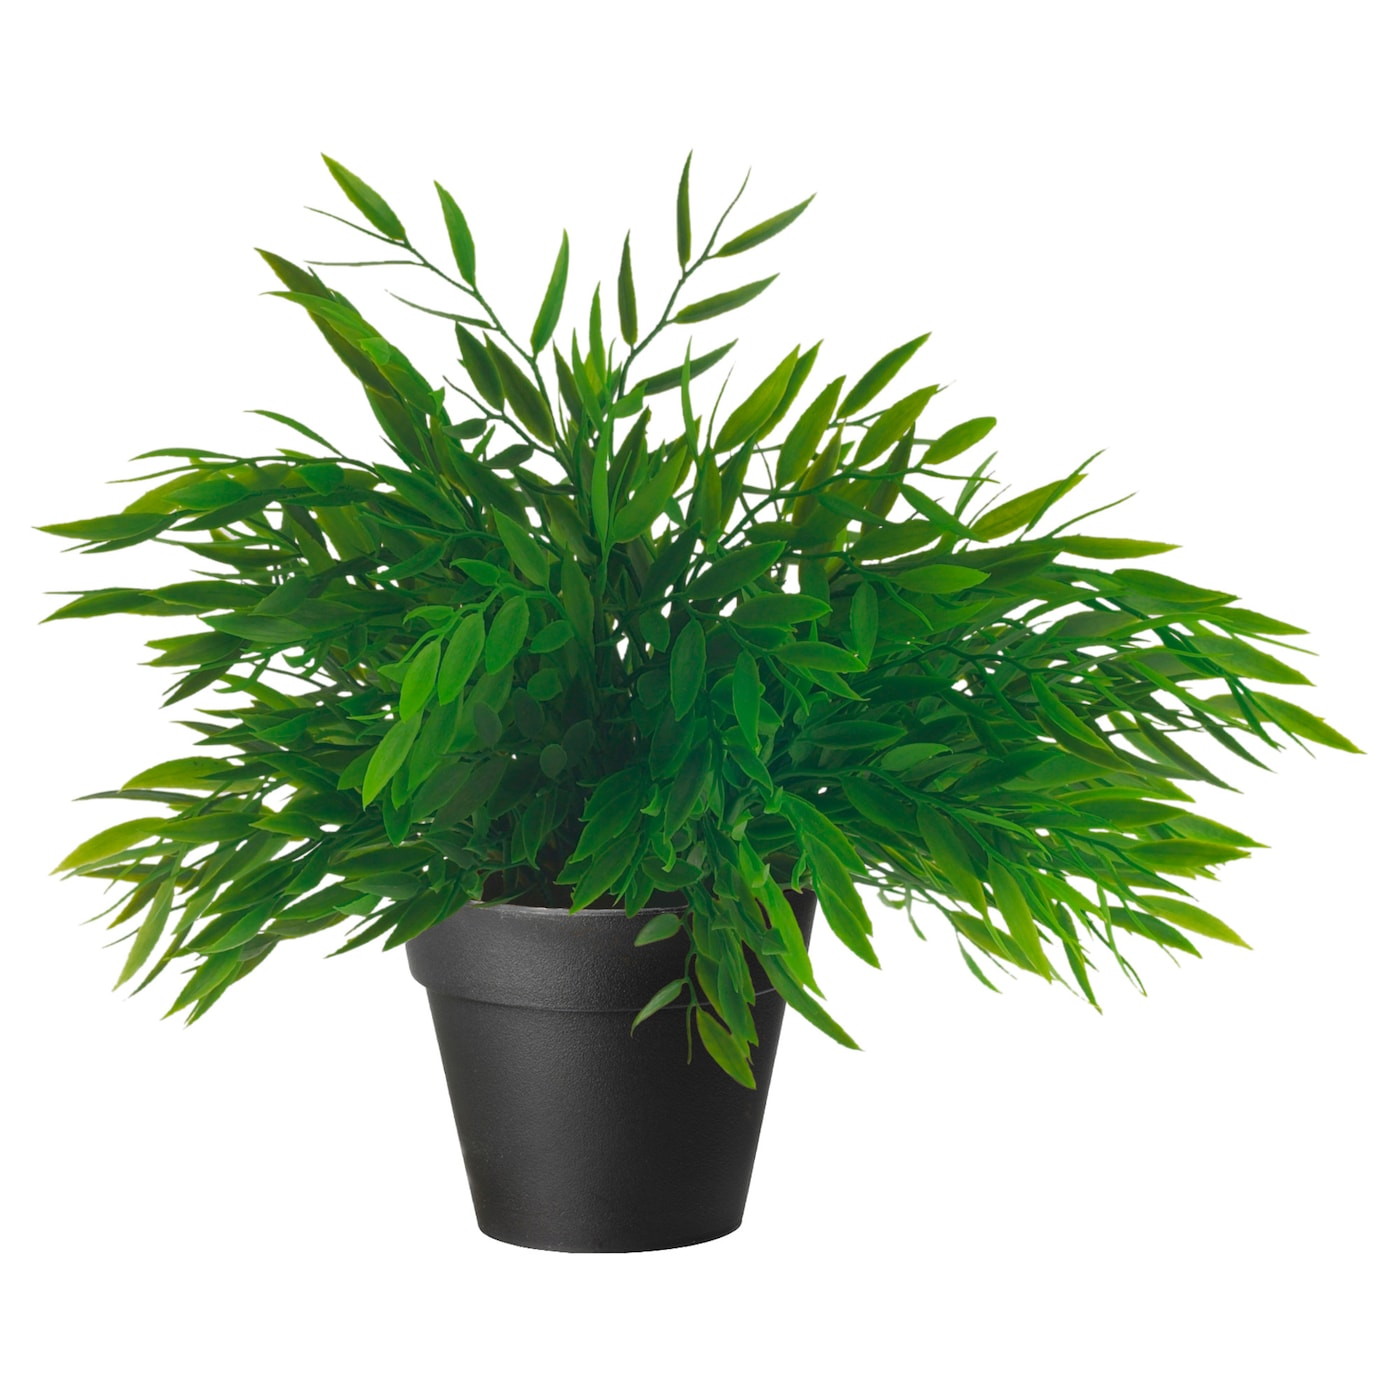 Garden decoration garden d cor ikea for Artificial plants for decoration